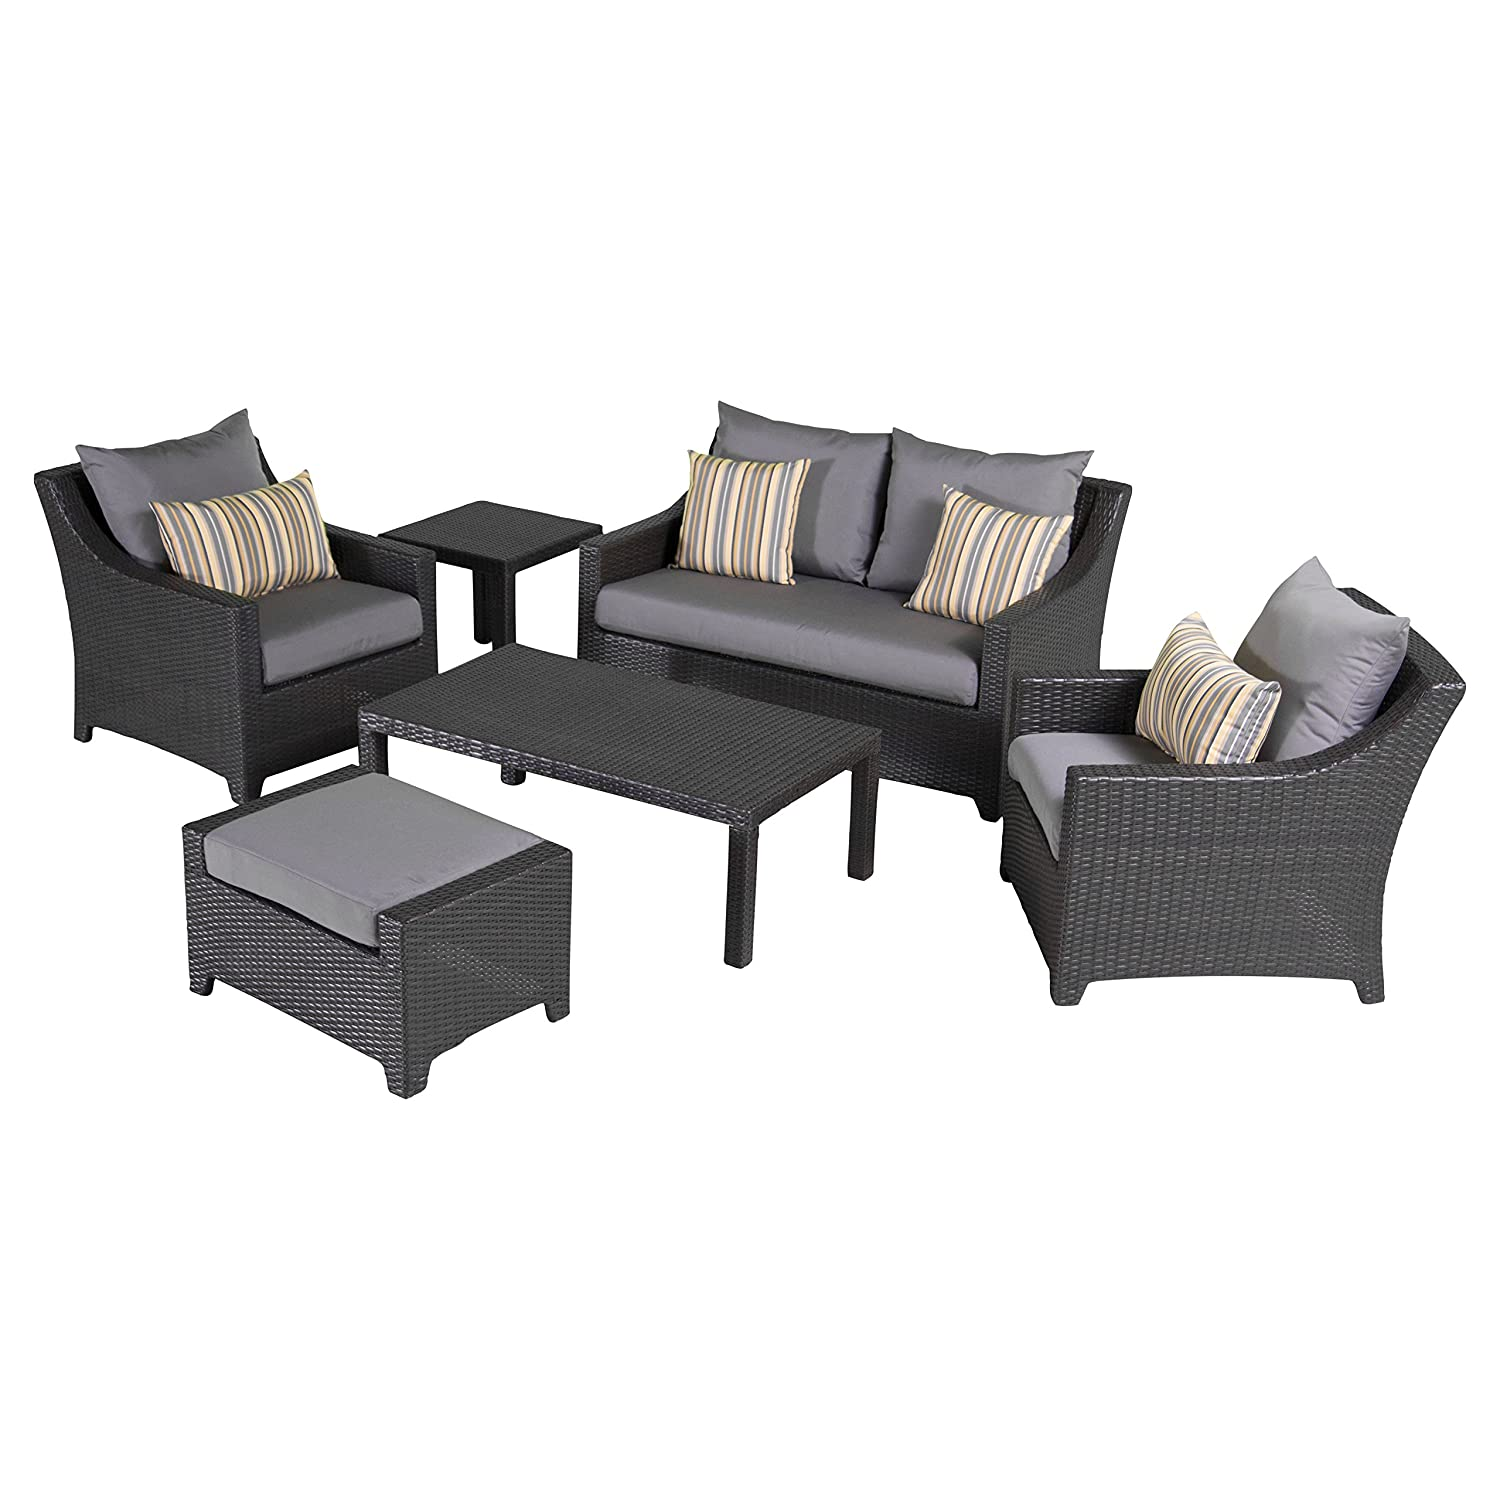 amazoncom rst brands deco 6piece love and club deep seating set with cushions ginkgo green patio lawn u0026 garden - Rst Brands